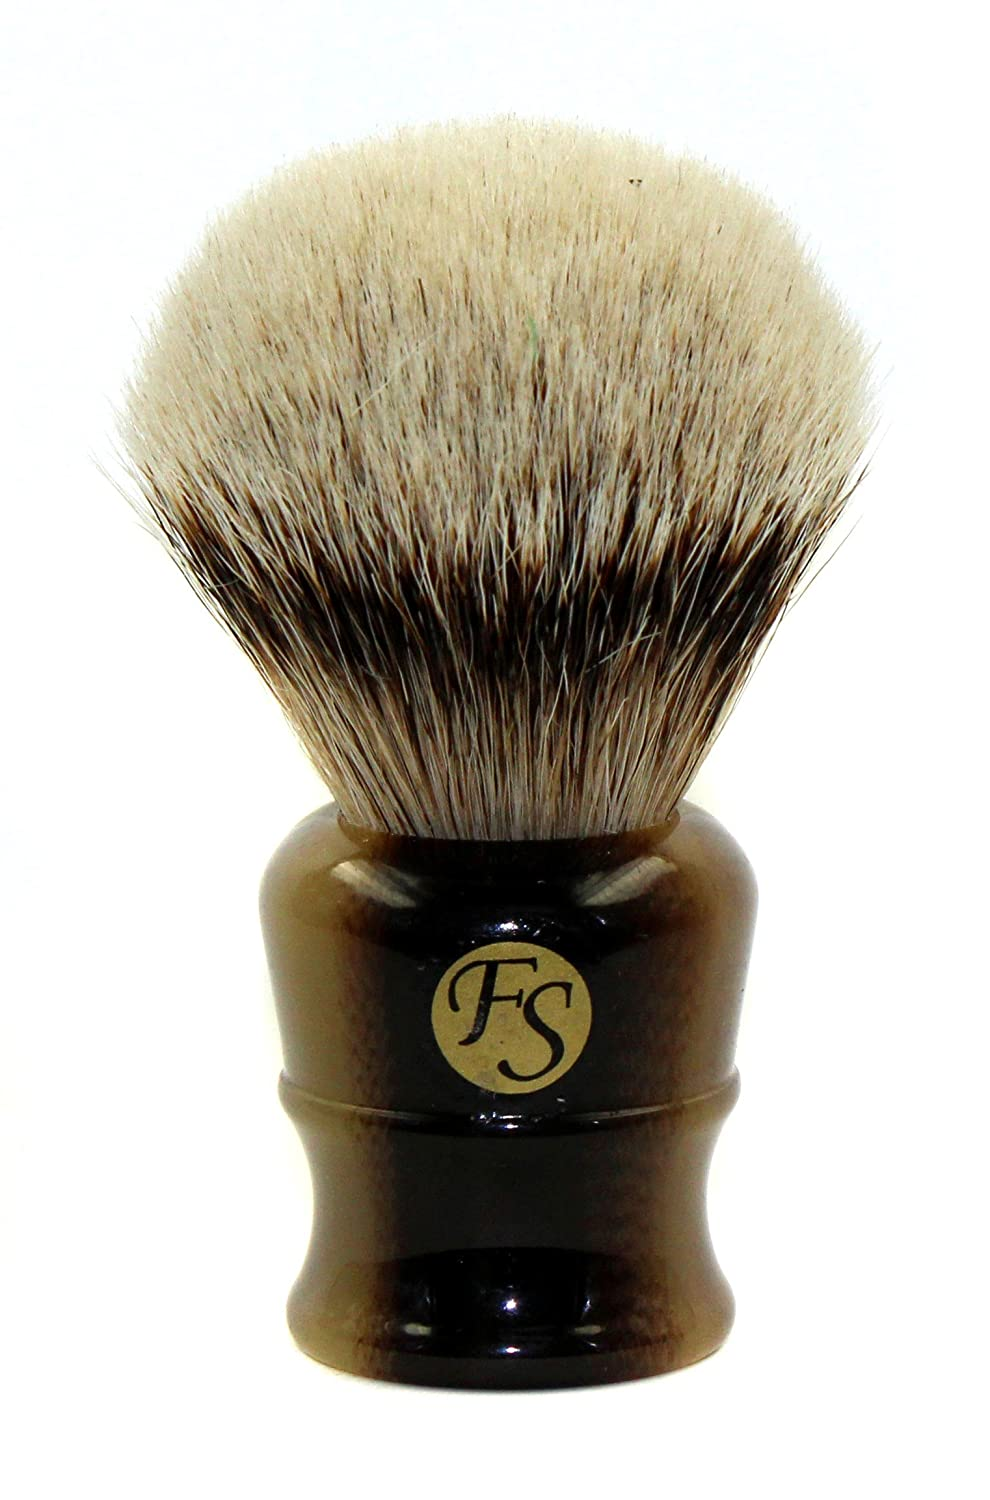 Super Large Silvertip Badger Shaving Brush with Faux Horn Handle Comes with Free Stand by Frank Shaving FS